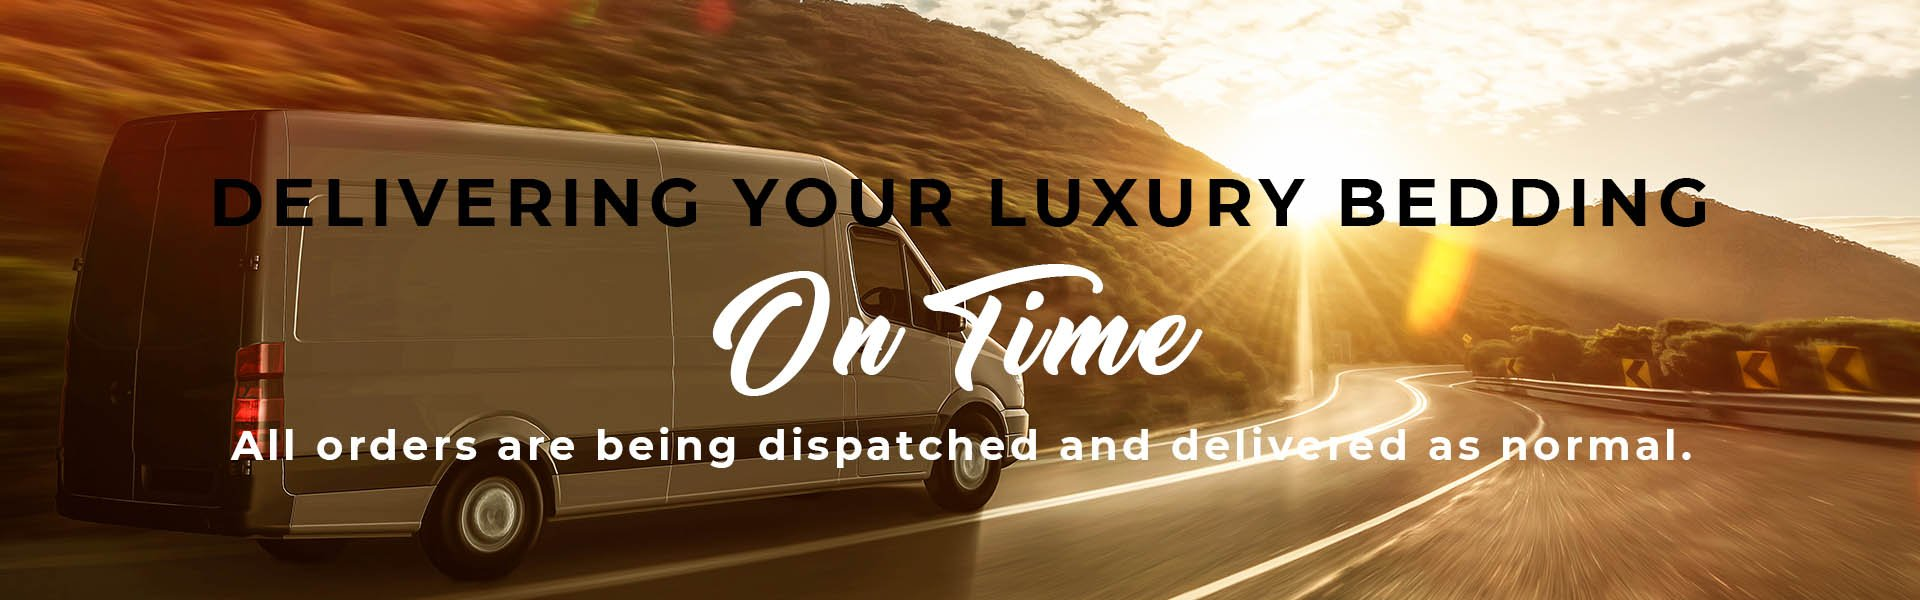 Delivering Your Luxury Bedding - Safely & On Time